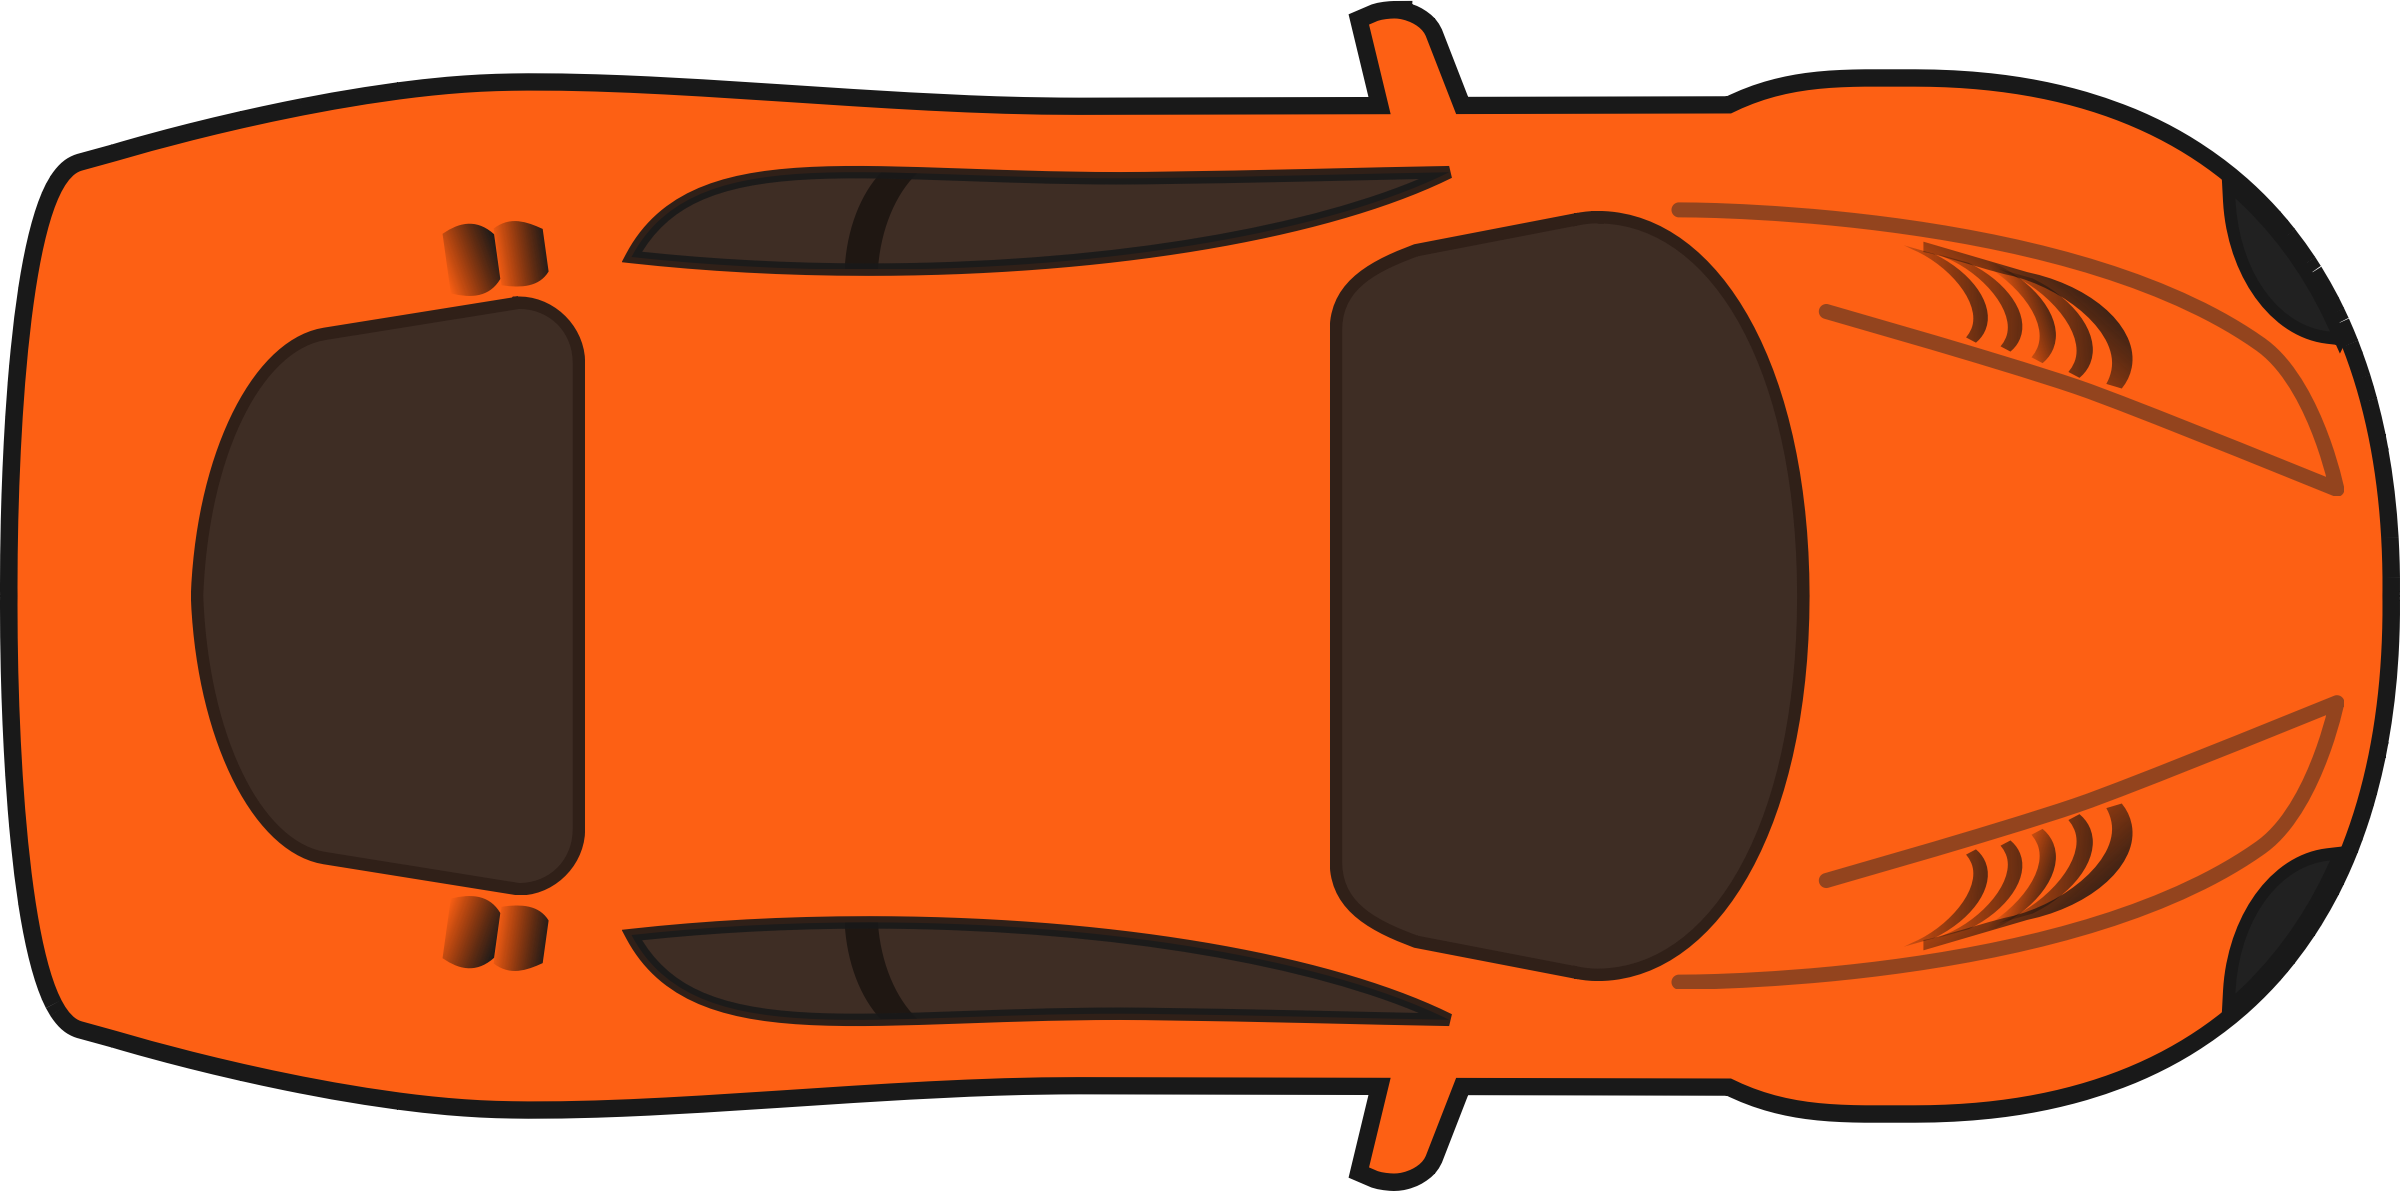 See clipart nice. Sports car drawing outline